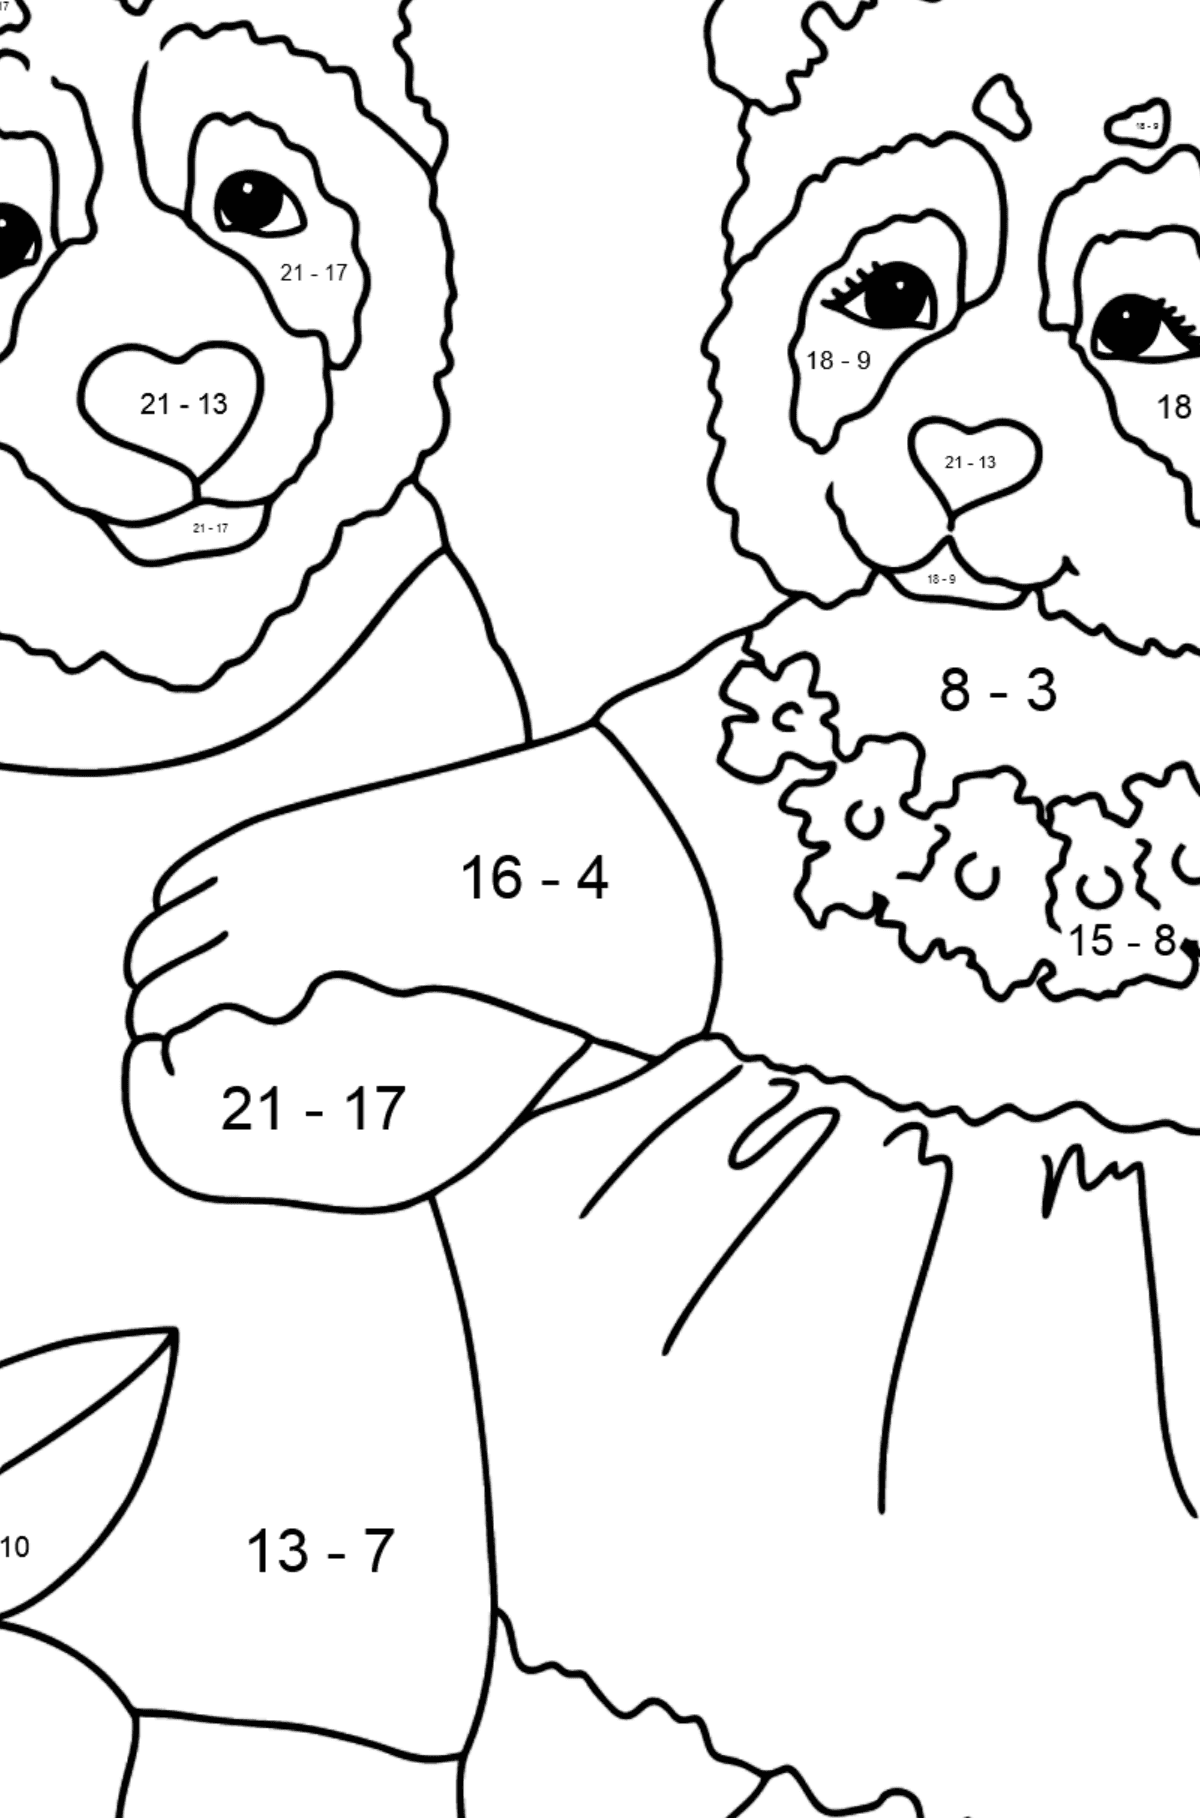 Coloring Page - Pandas are Taking a Walk - Math Coloring - Subtraction for Kids